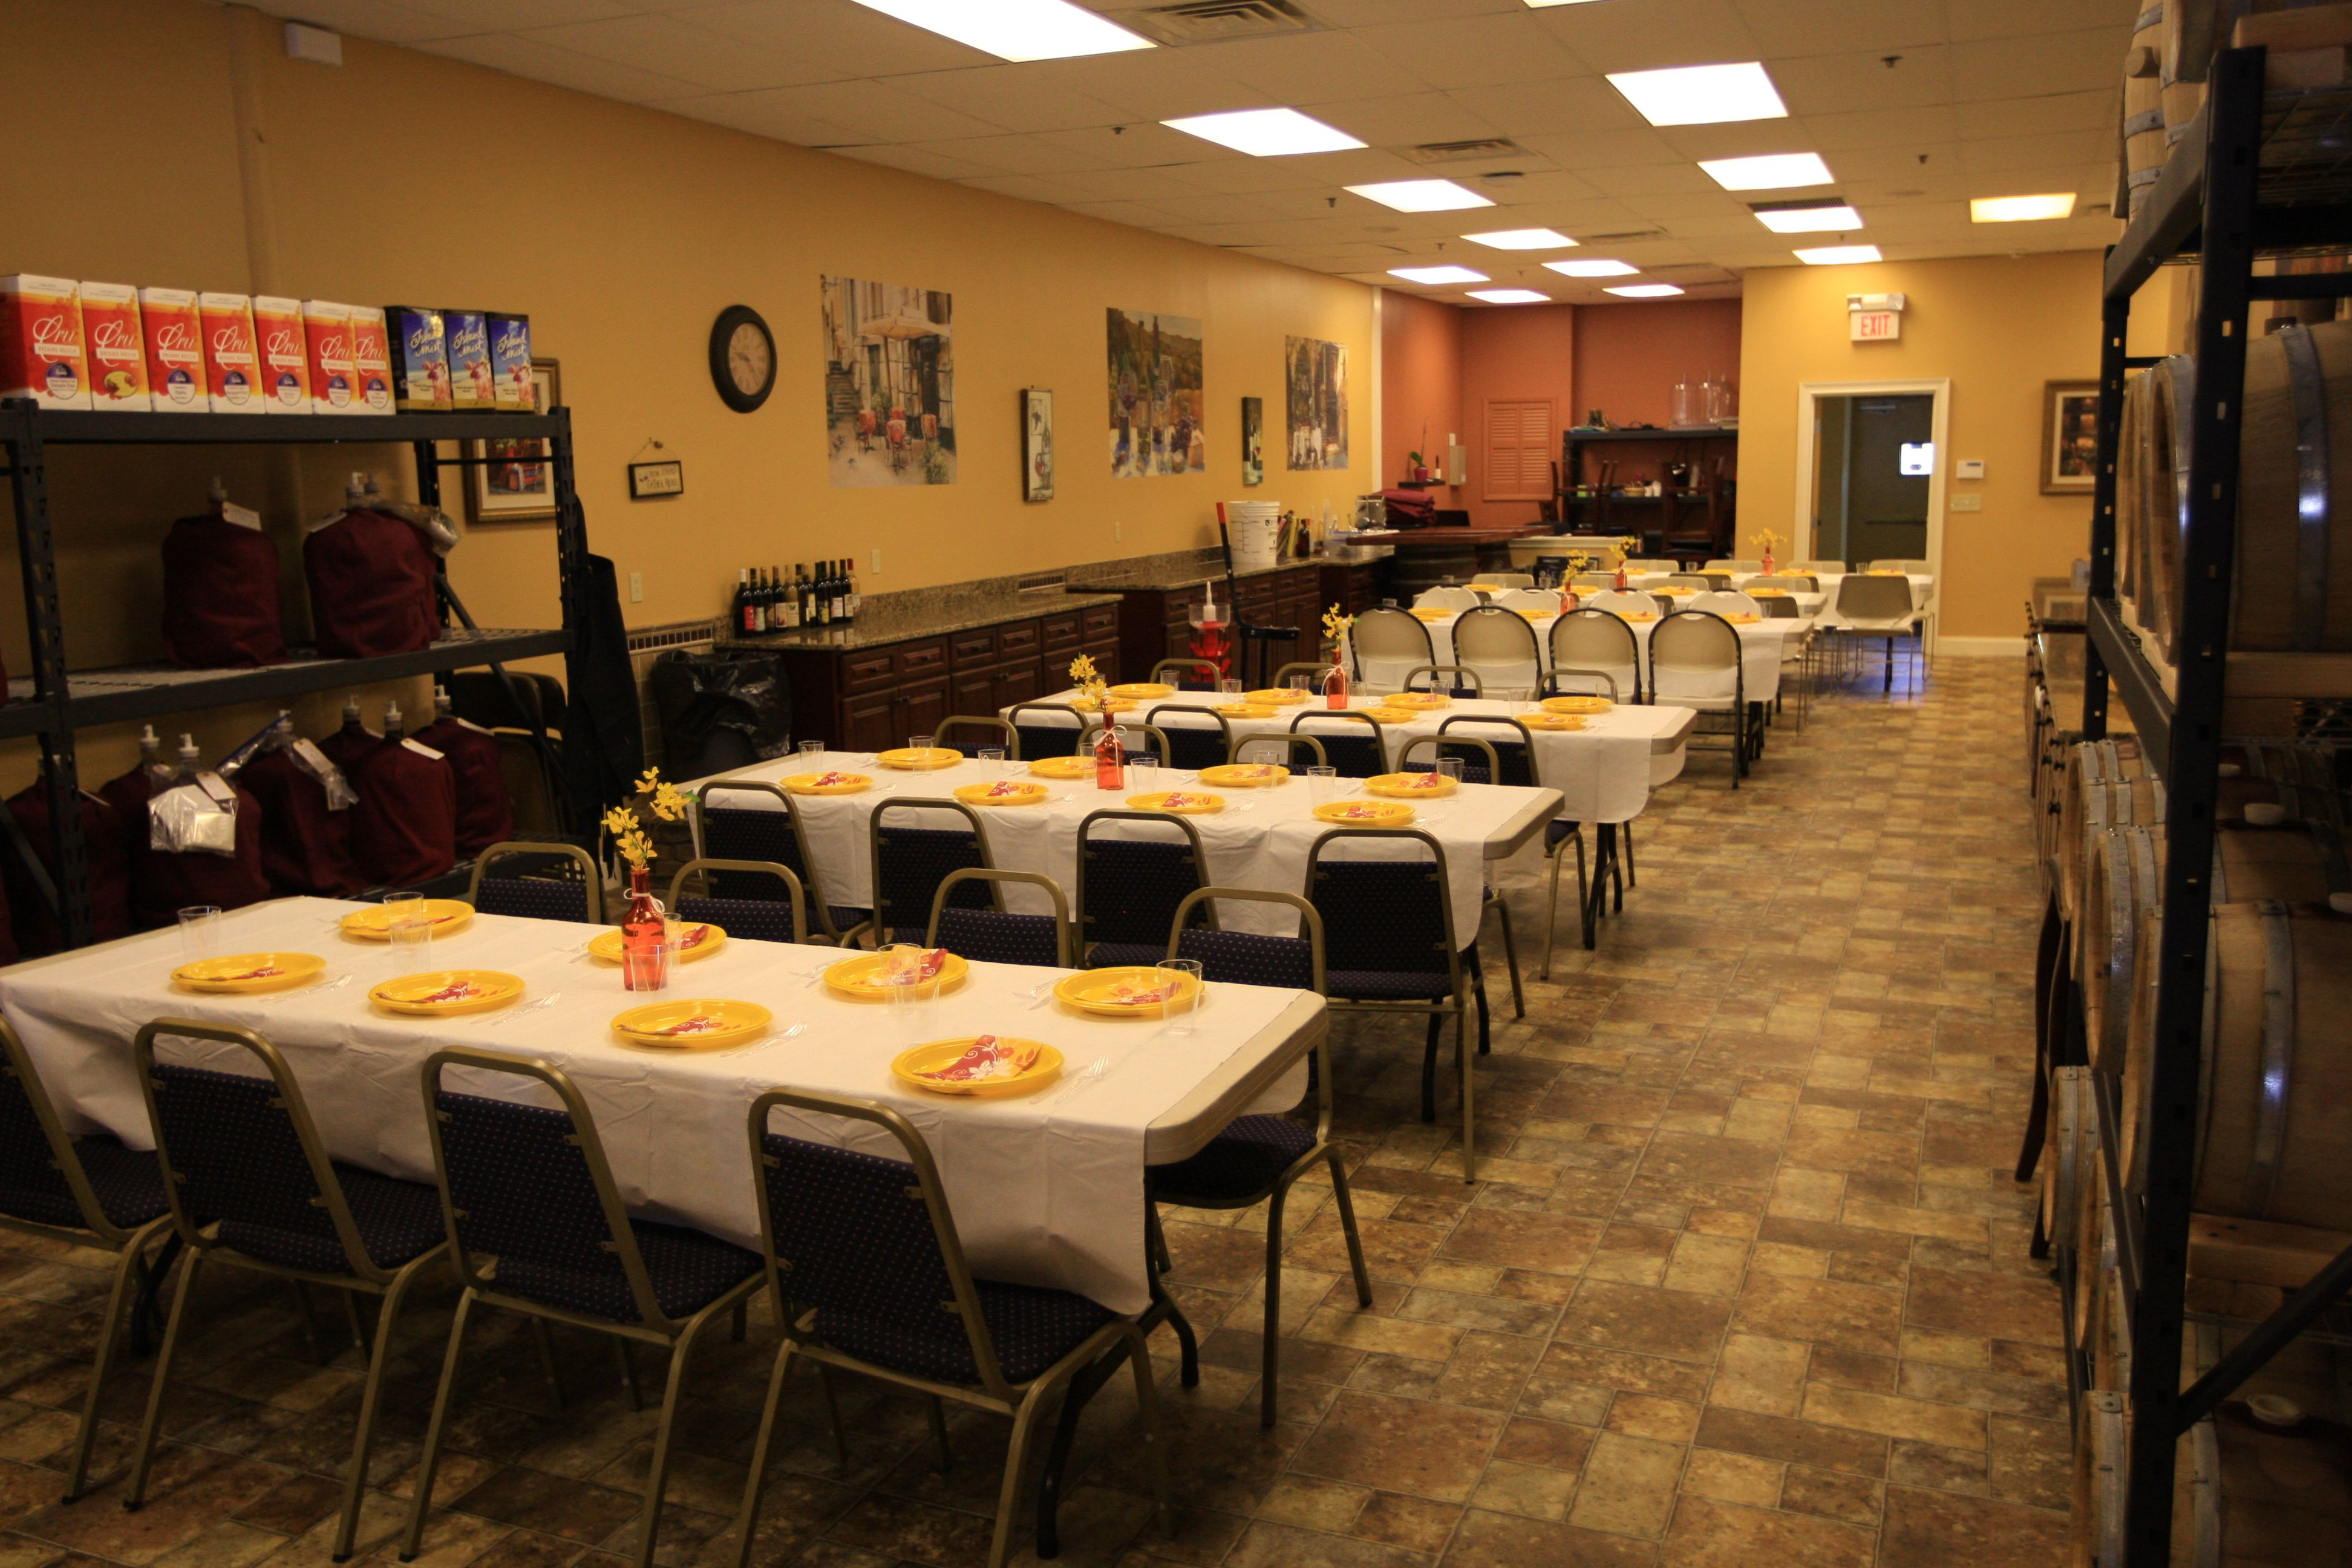 Nice classic seating to accommodate 75 guests.